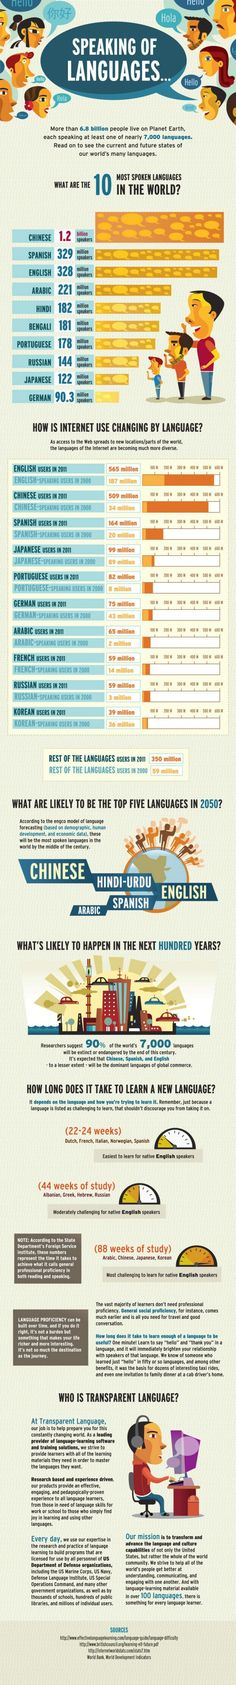 Speaking of Languages - I know I work at a Language Institute... but this is fascinating!